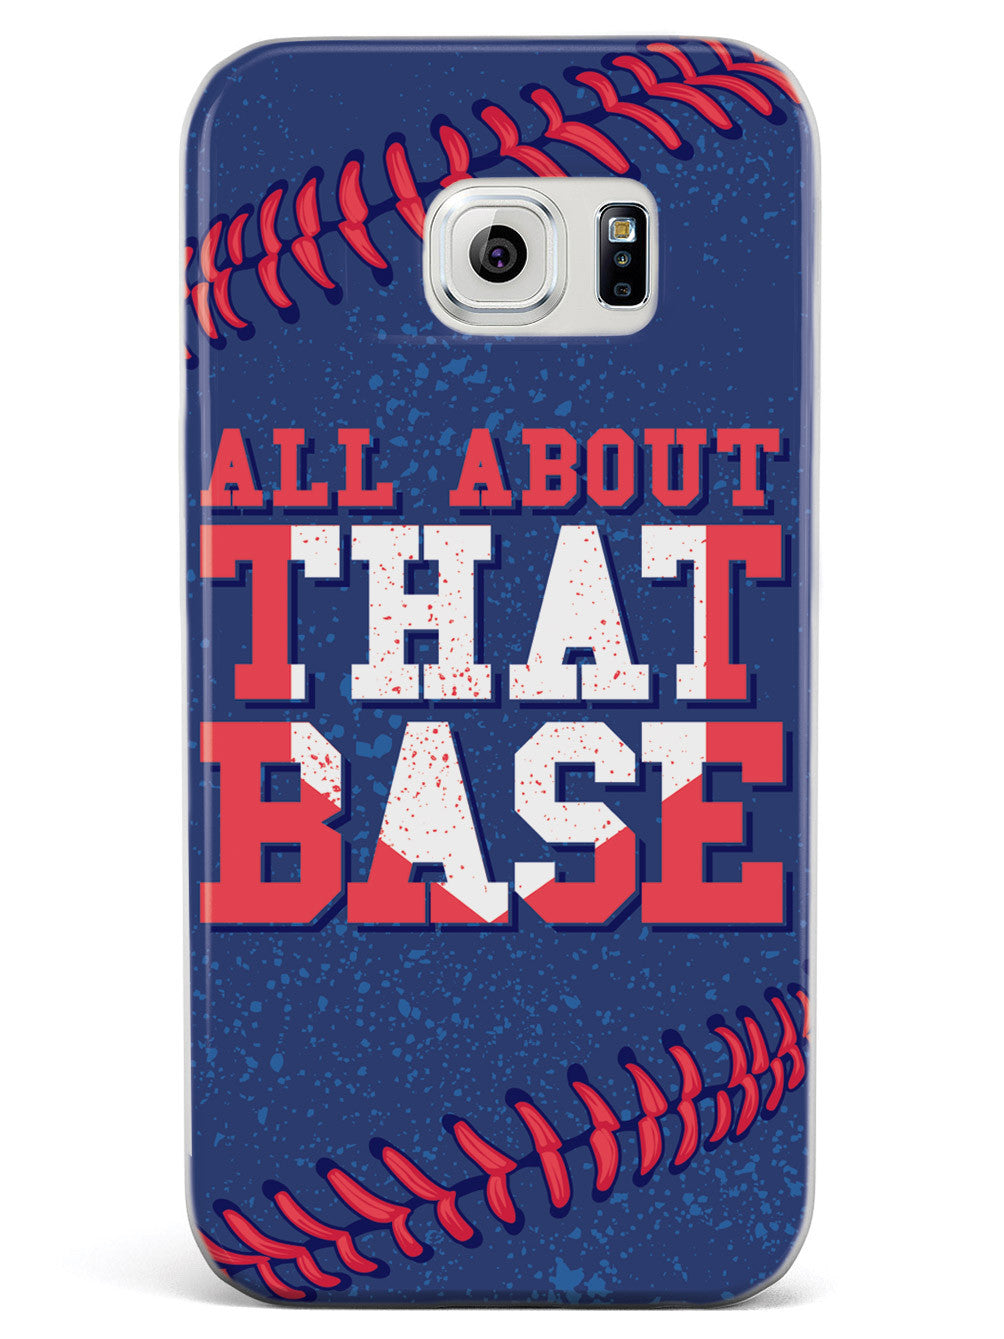 All About That Base - Patriotic Theme Case